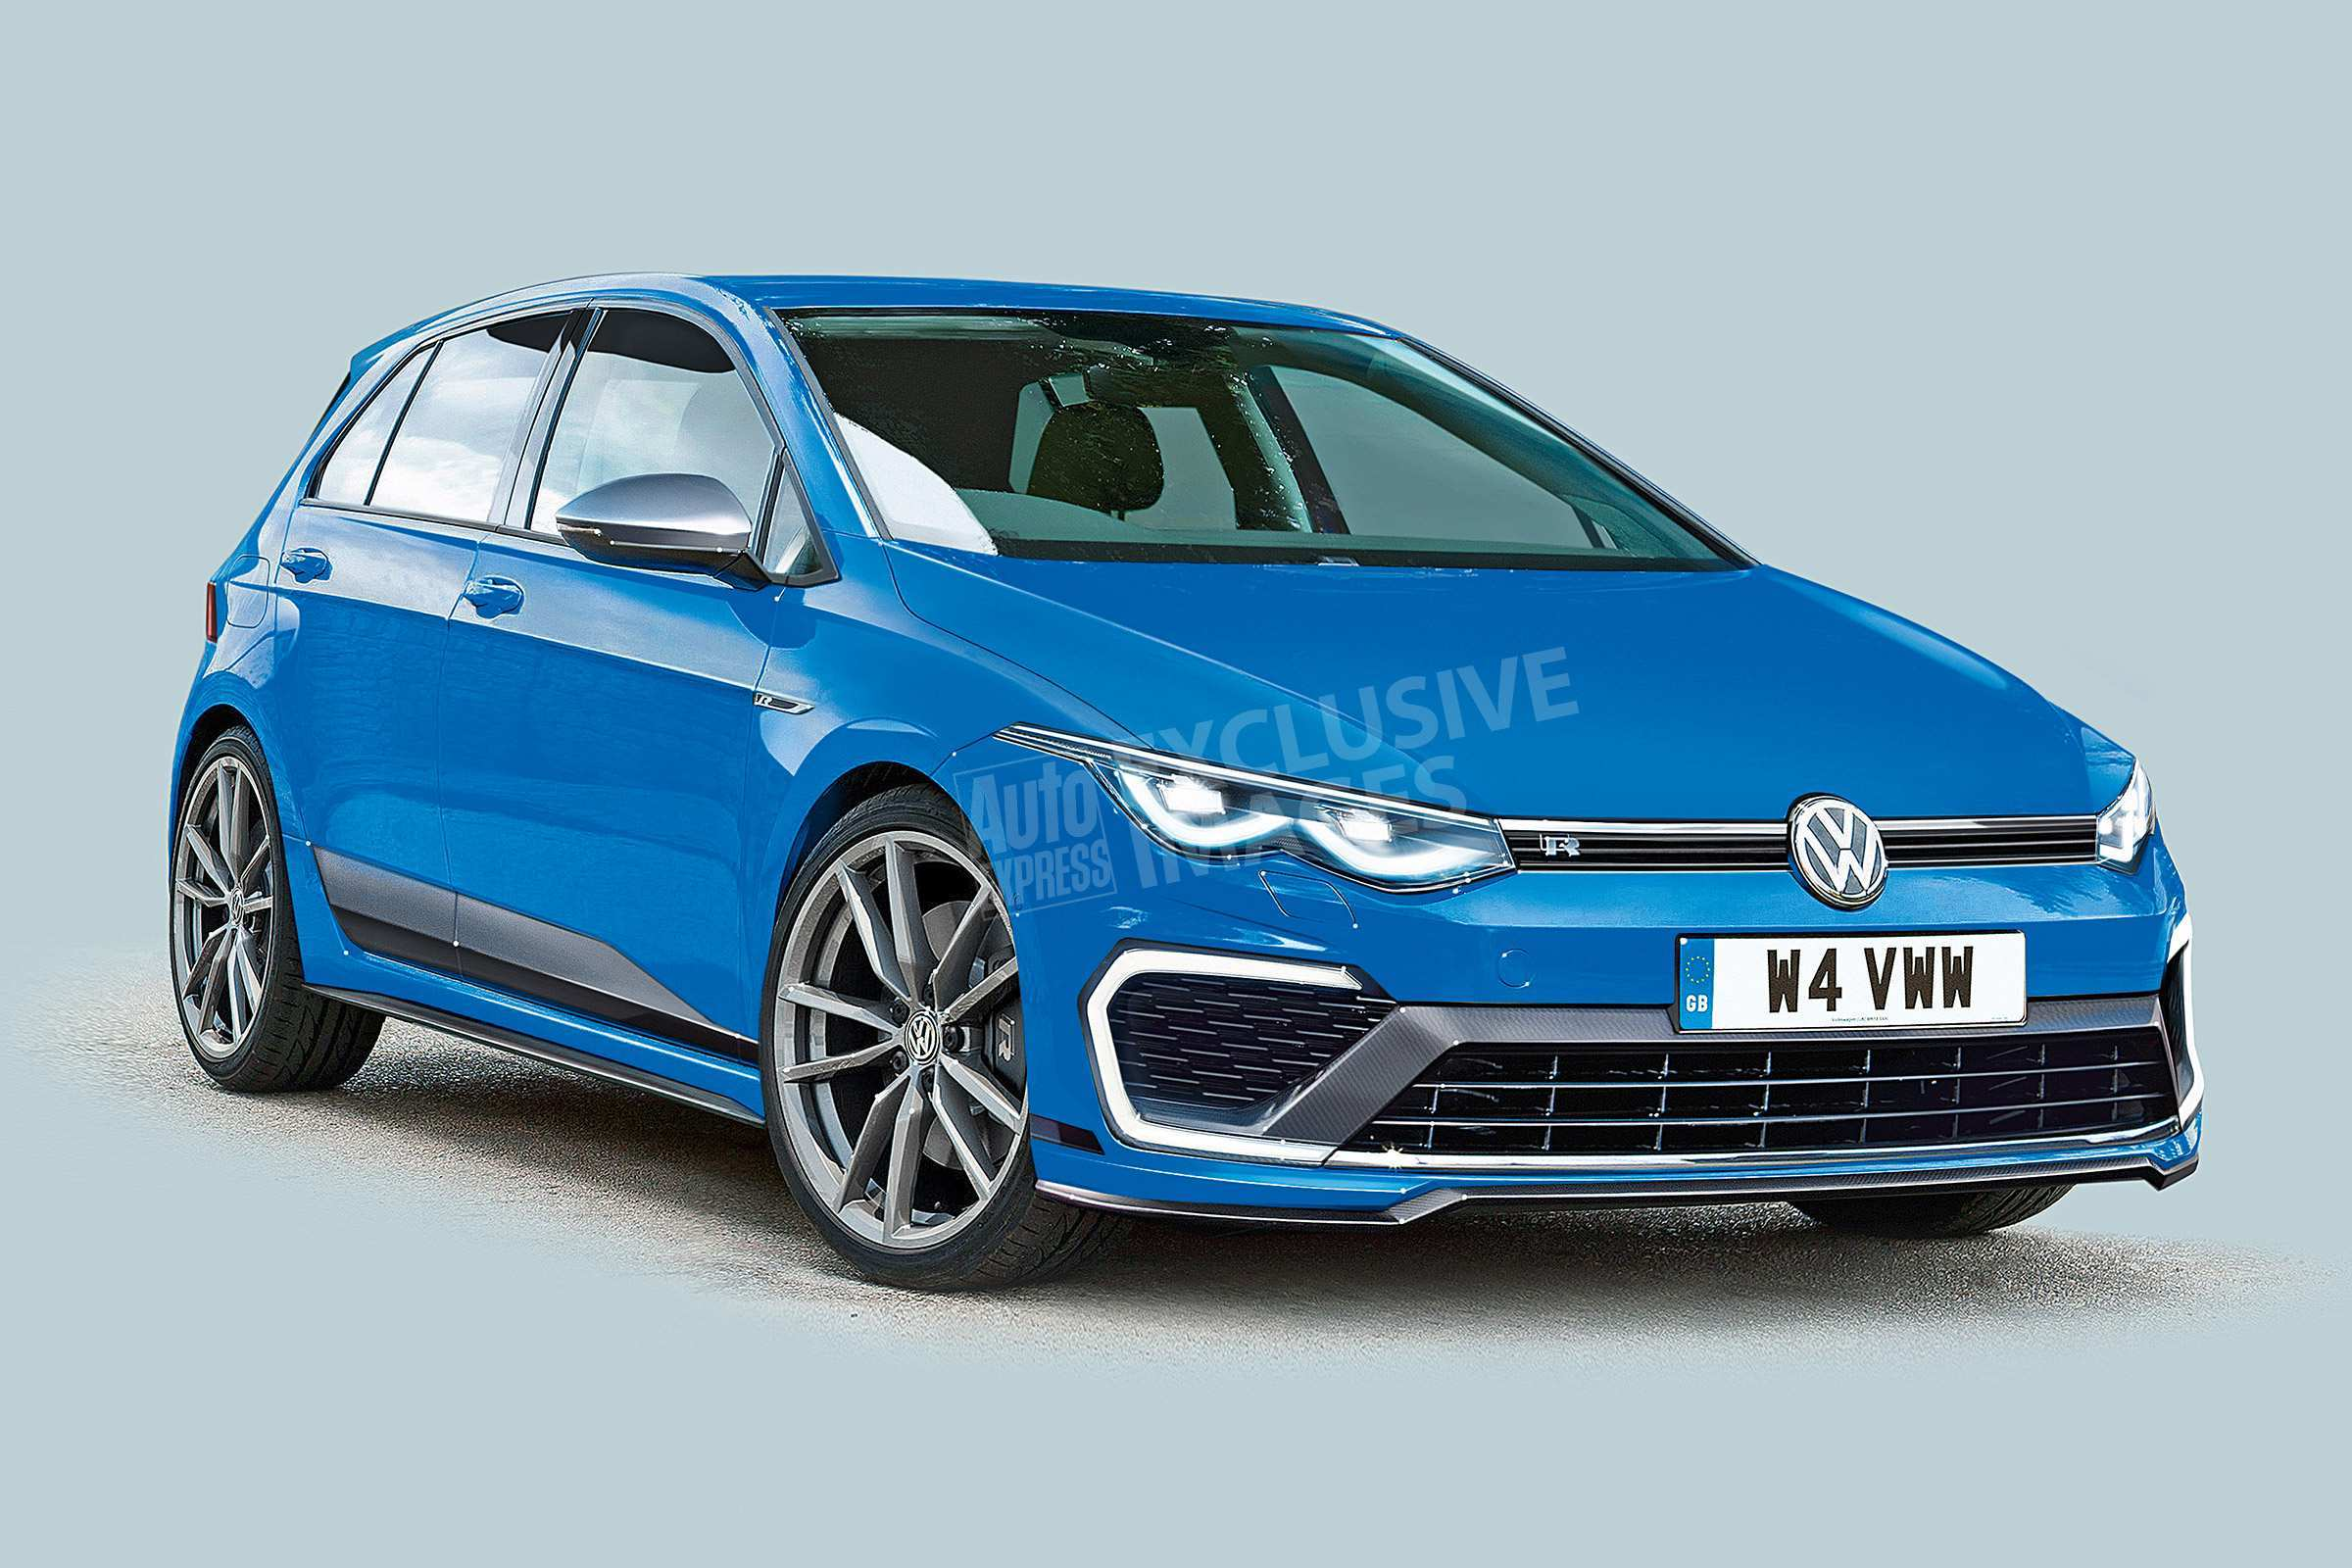 21 Great Buy Now Pay In 2020 Volkswagen Release for Buy Now Pay In 2020 Volkswagen